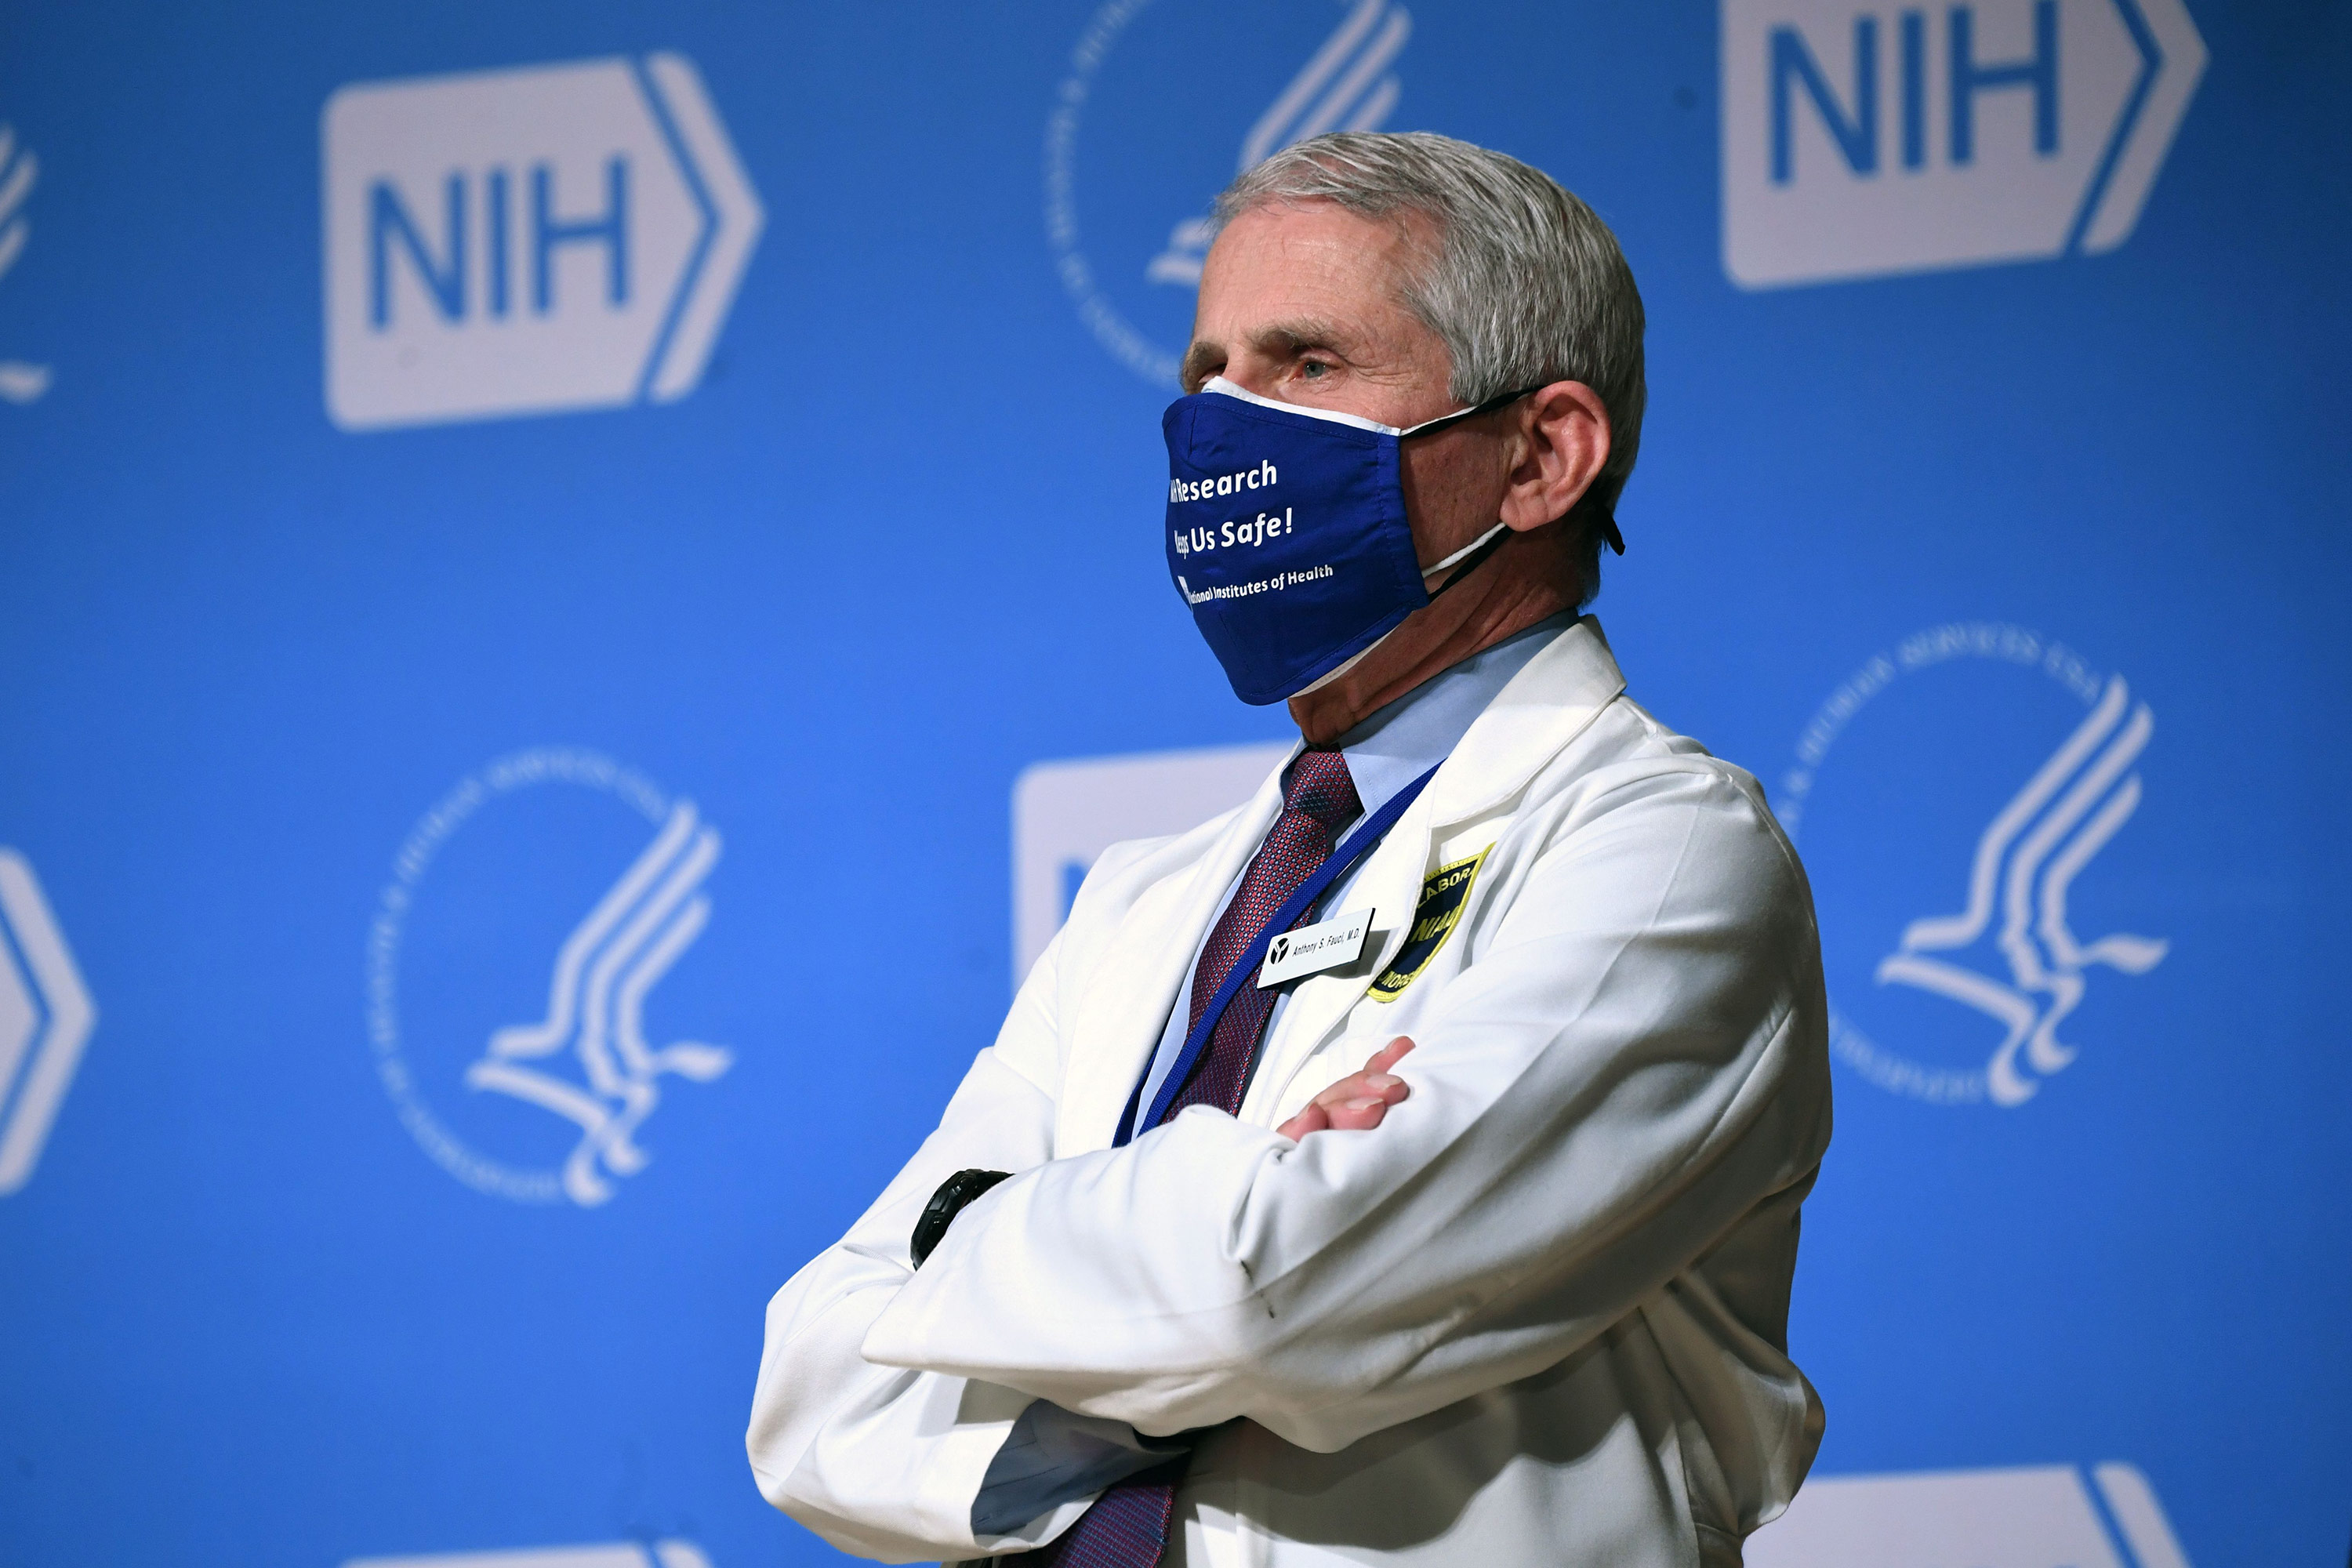 Dr. Anthony Fauci attends an event at the National Institutes of Health in Bethesda, Maryland, on February 11.